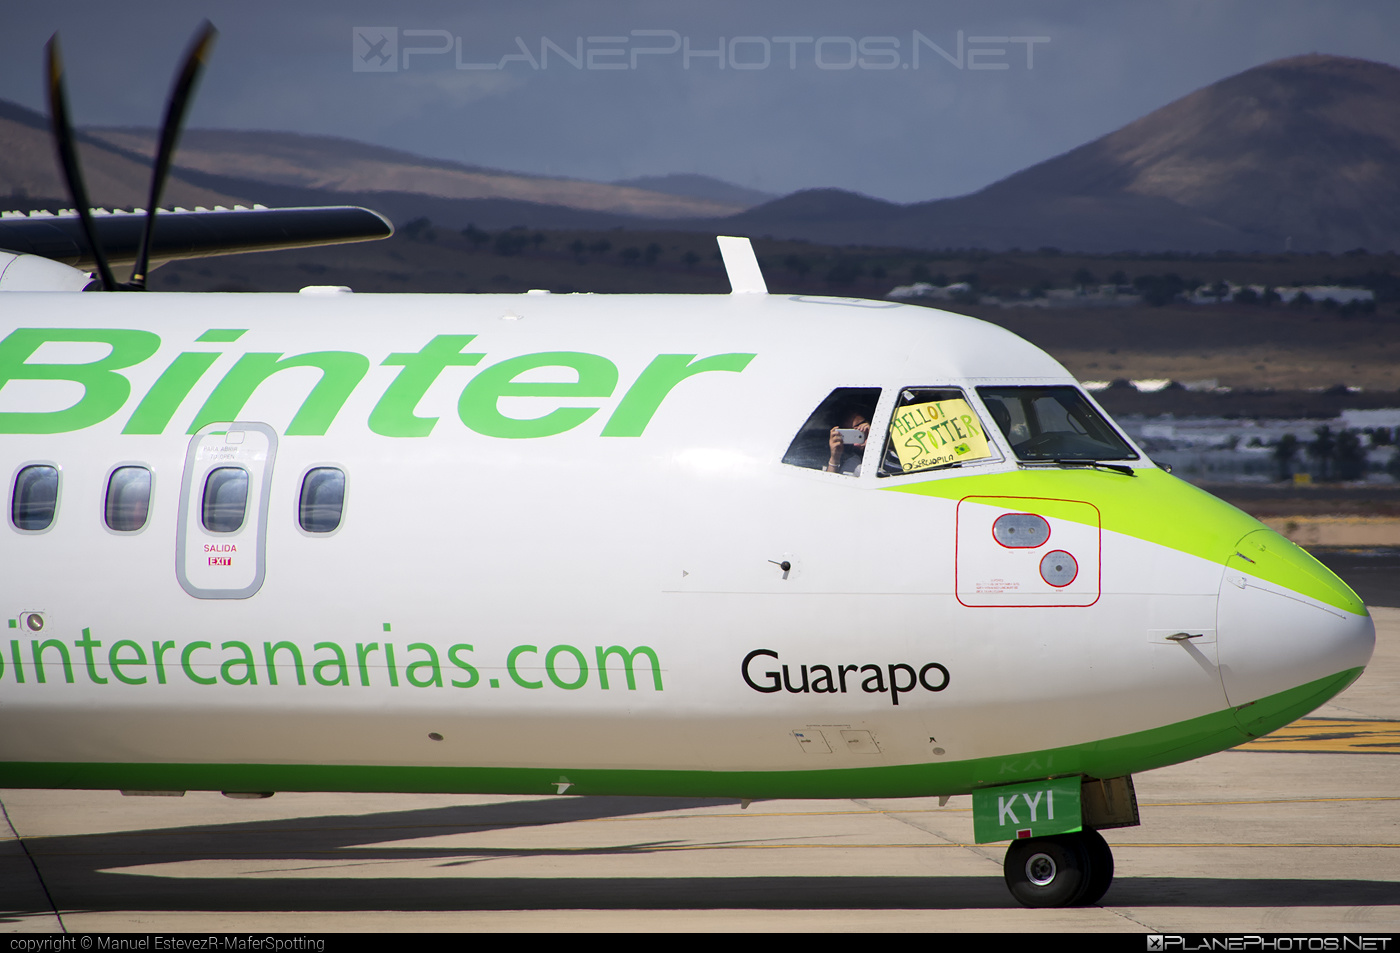 ATR 72-212A - EC-KYI operated by Binter Canarias #atr